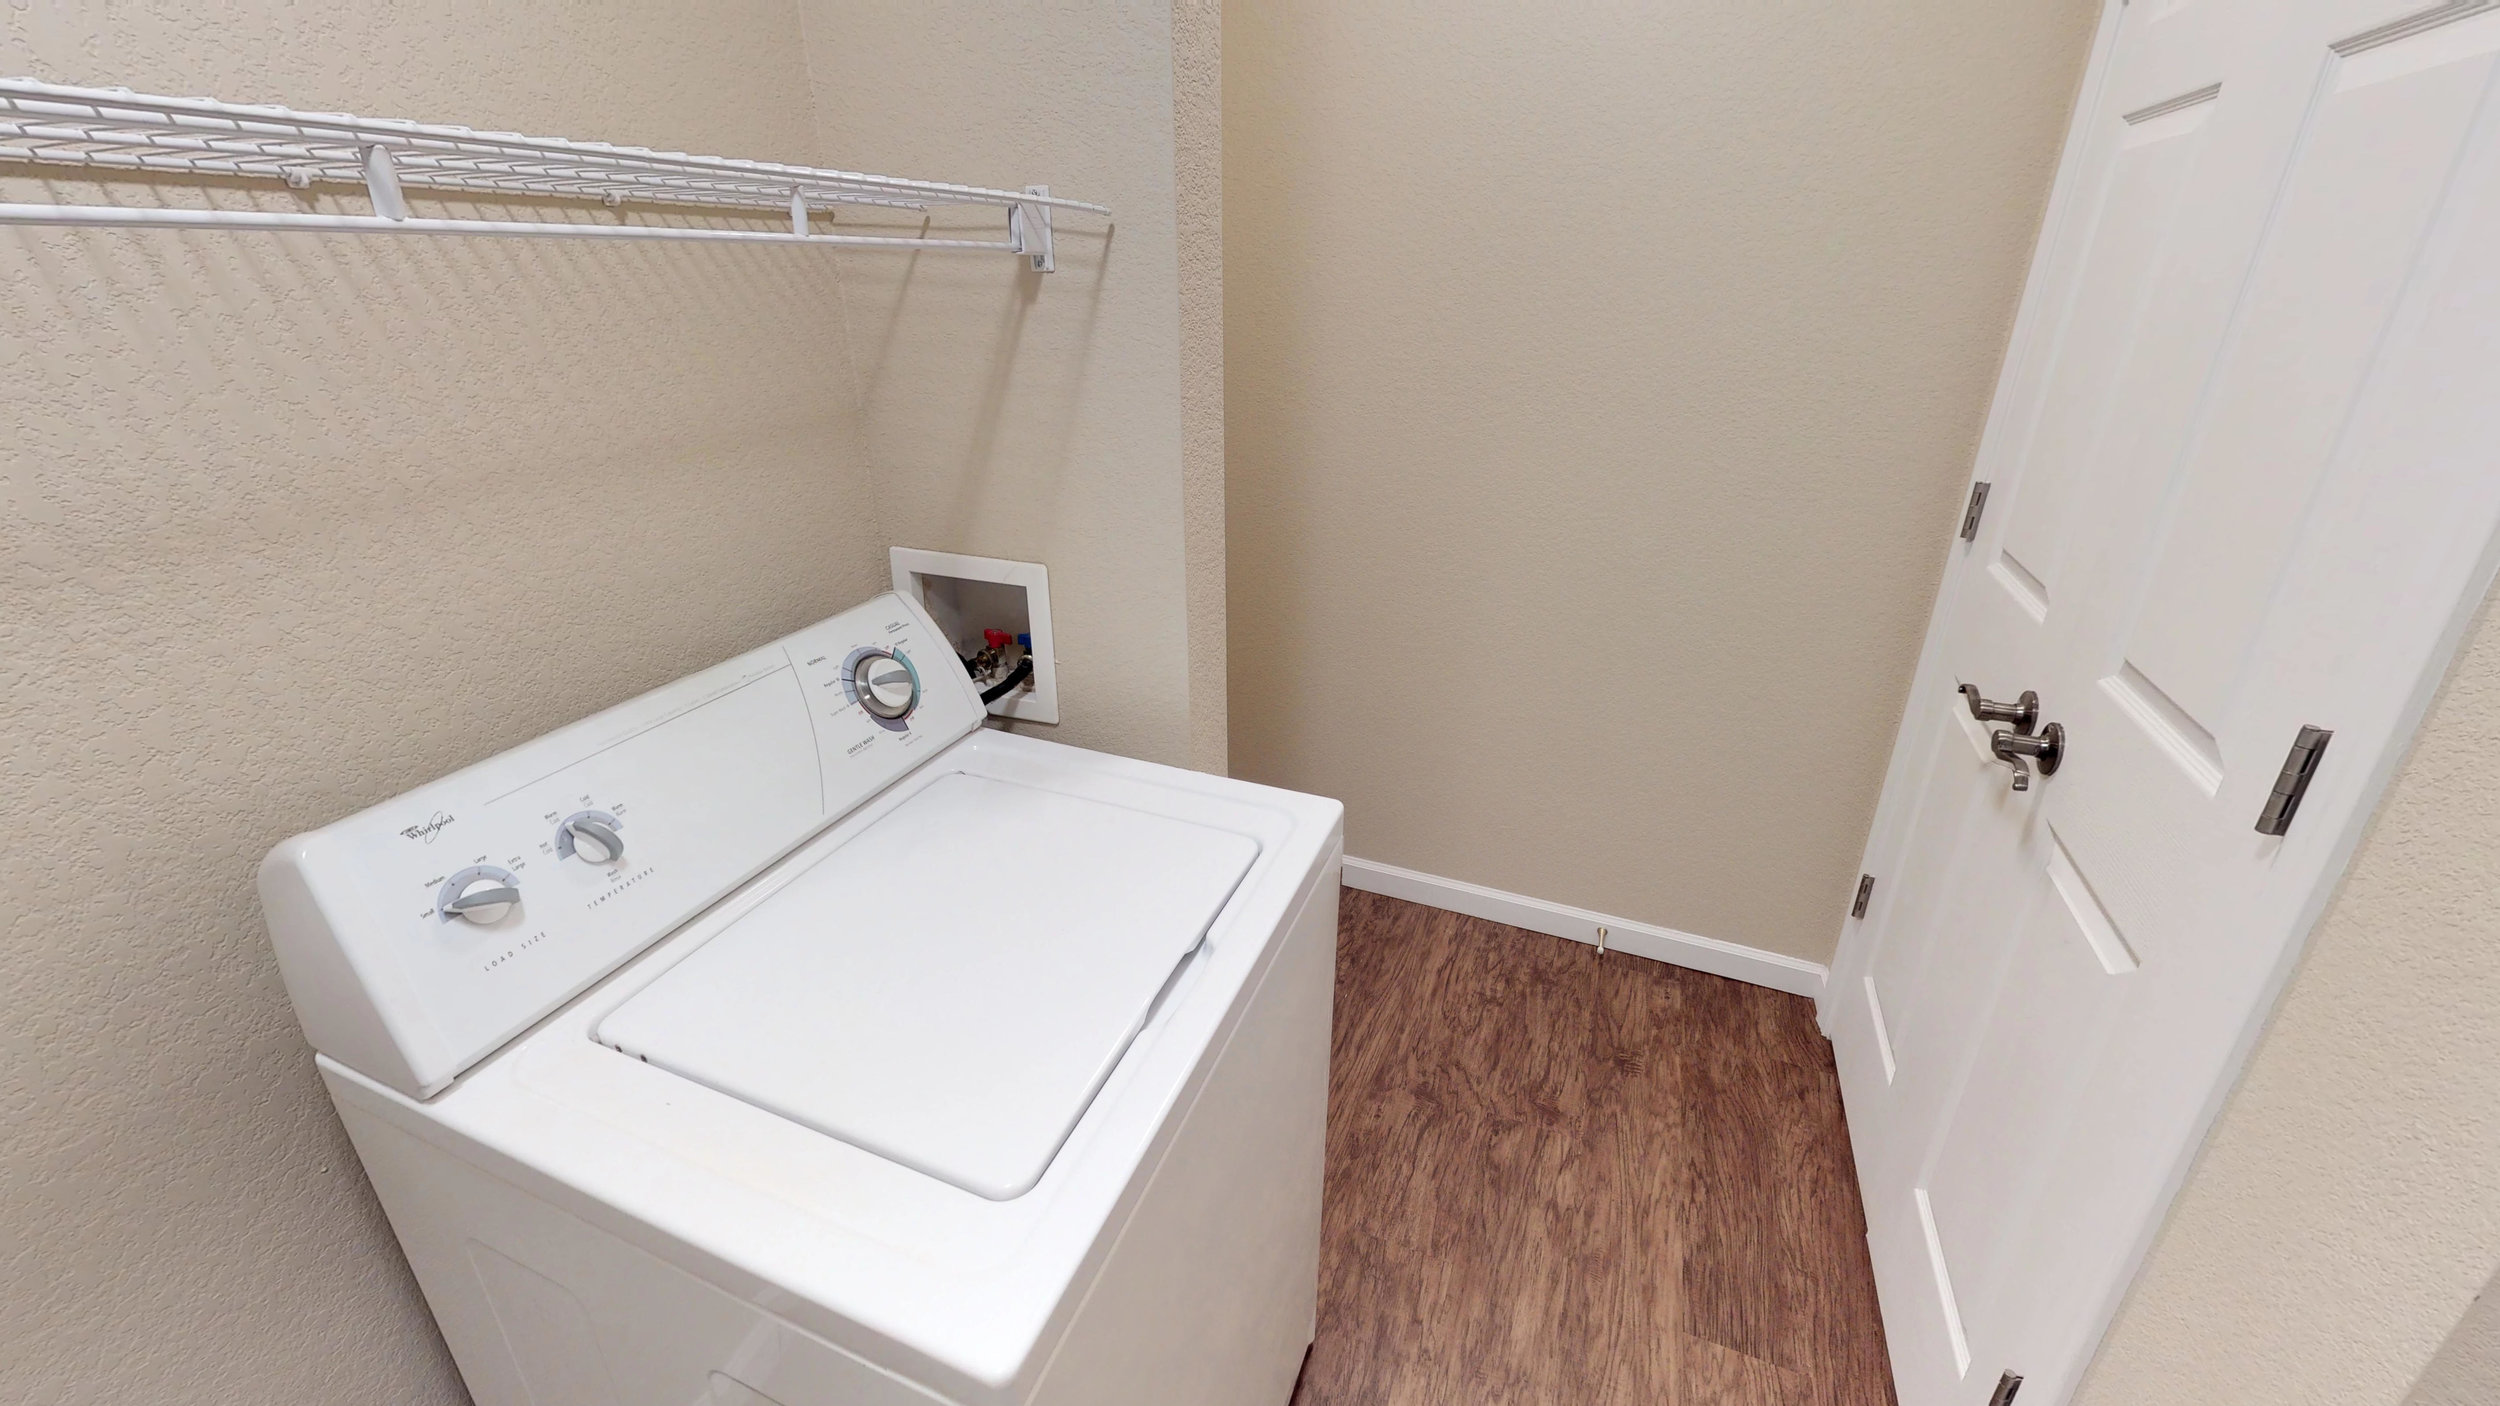 08-In-Home Washer _ Dryers.jpg